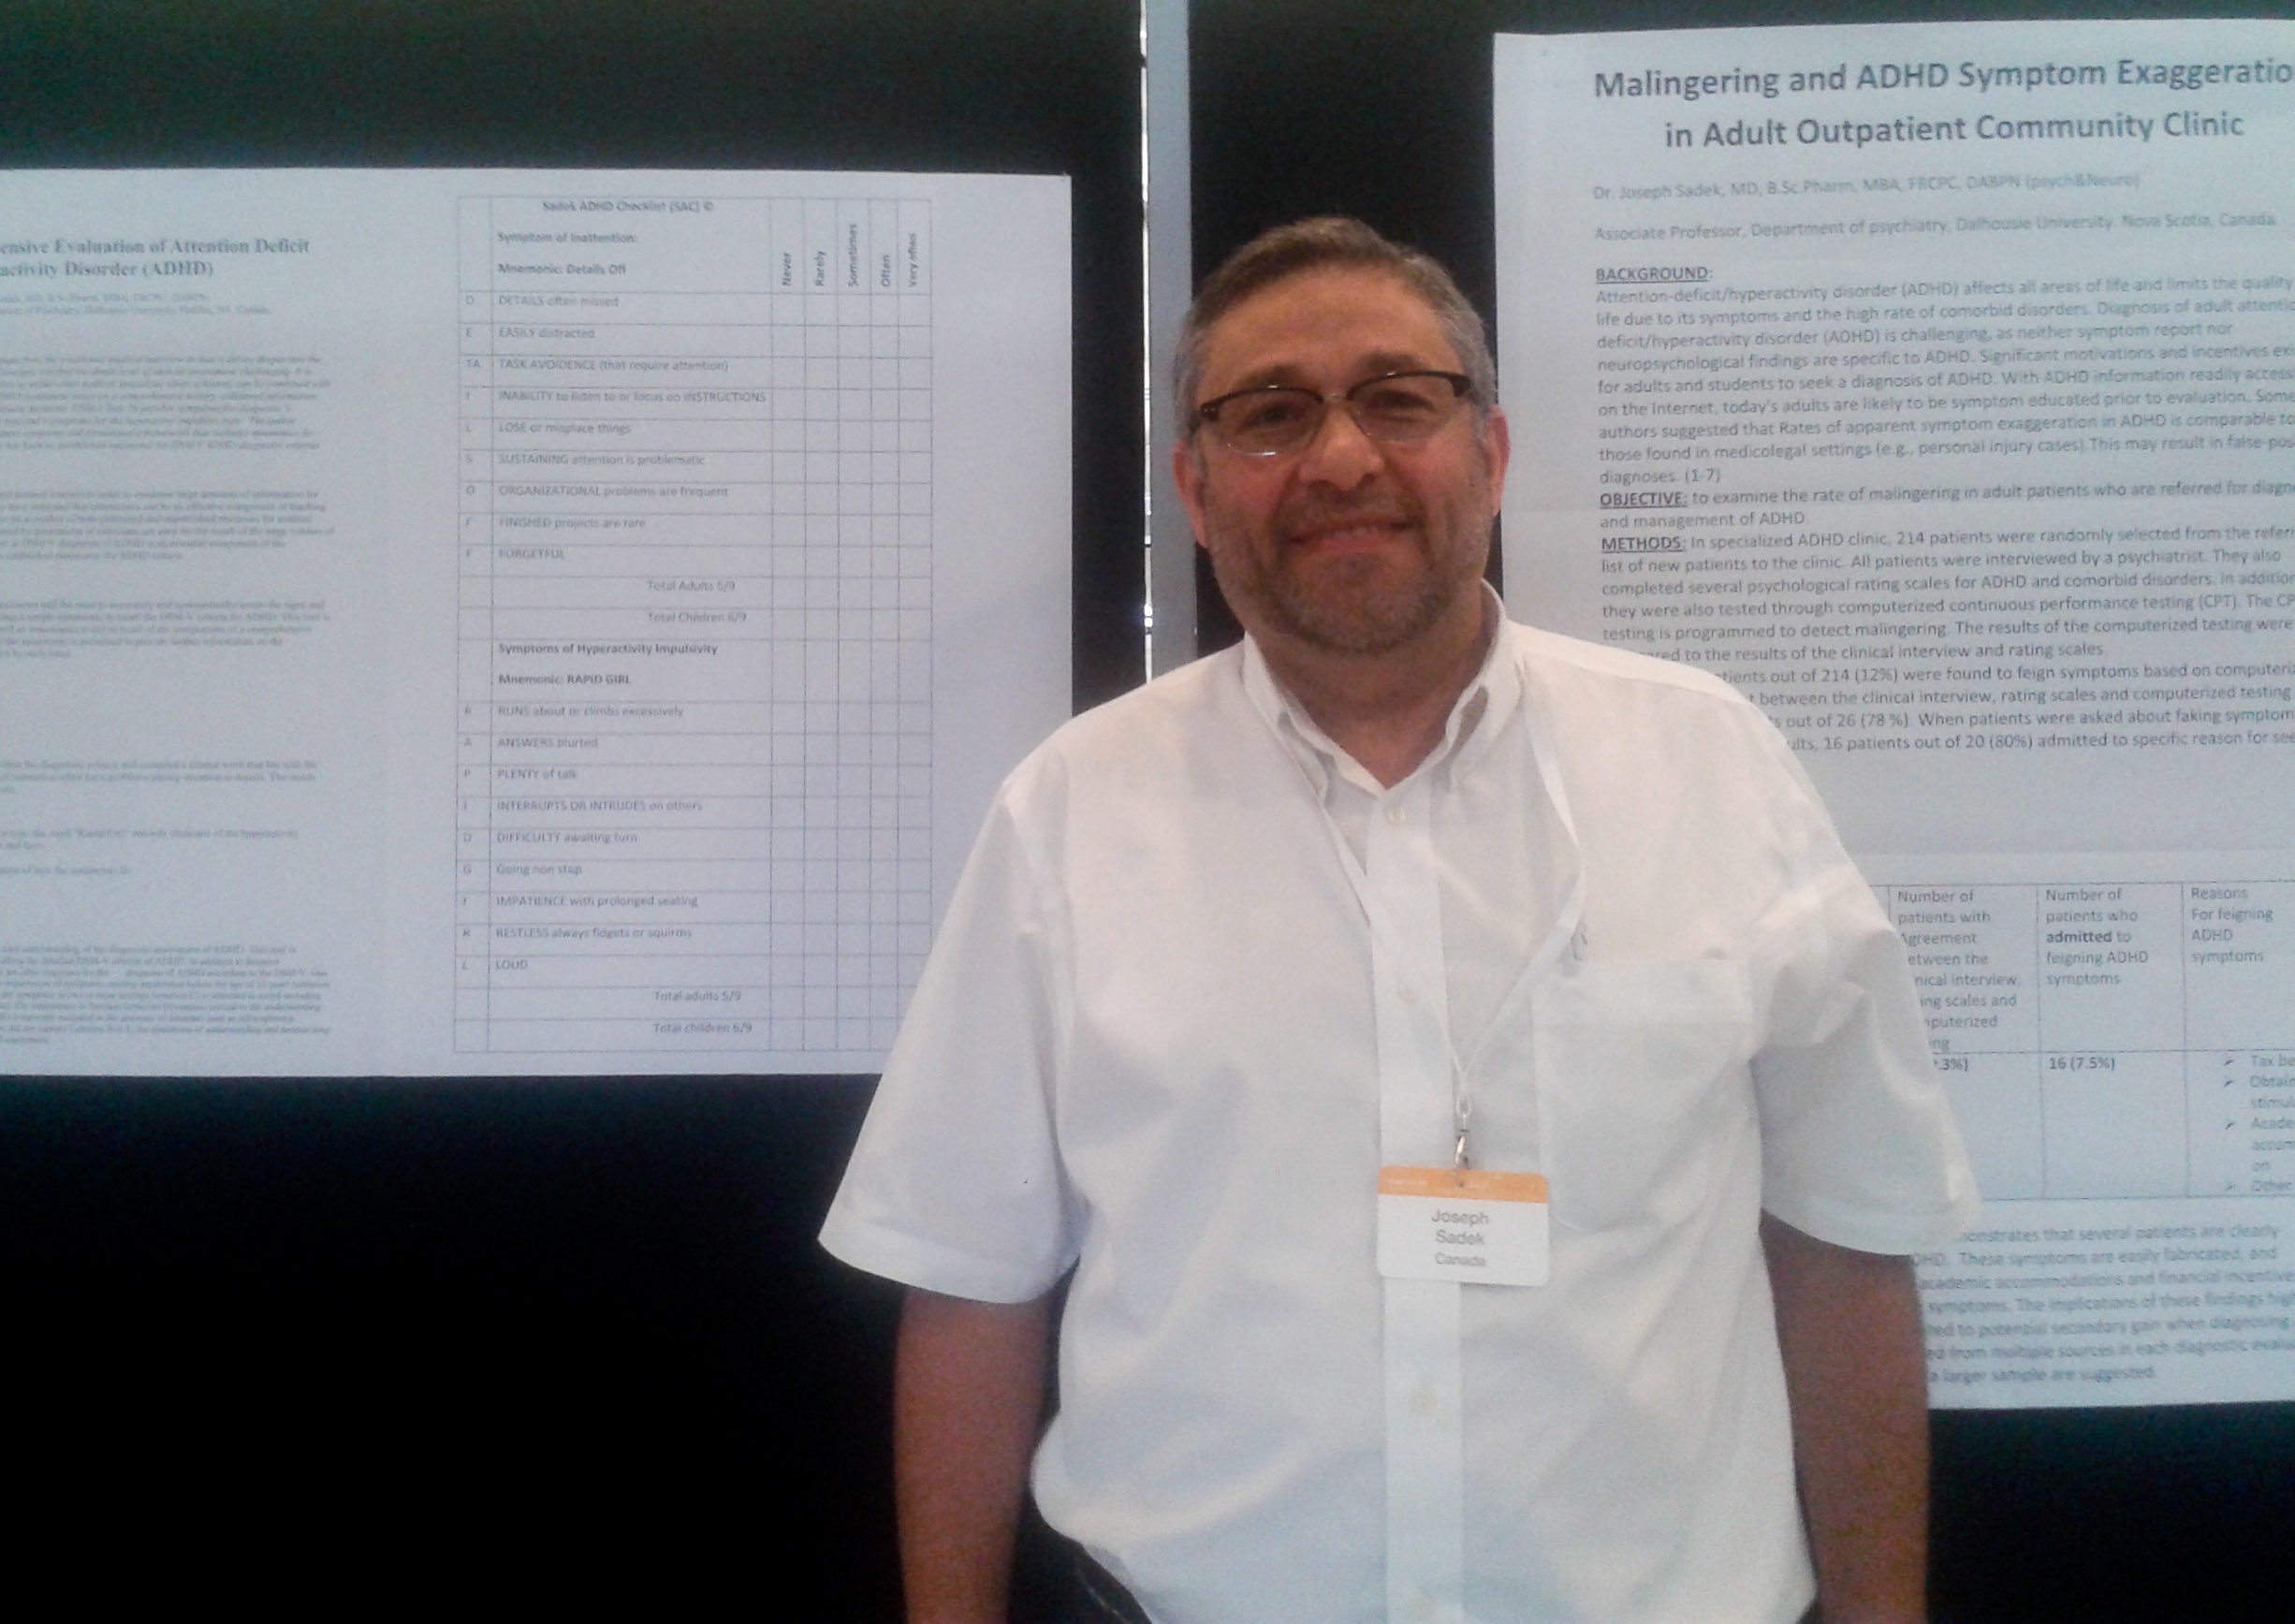 Presenting In Berlin ADHD conference